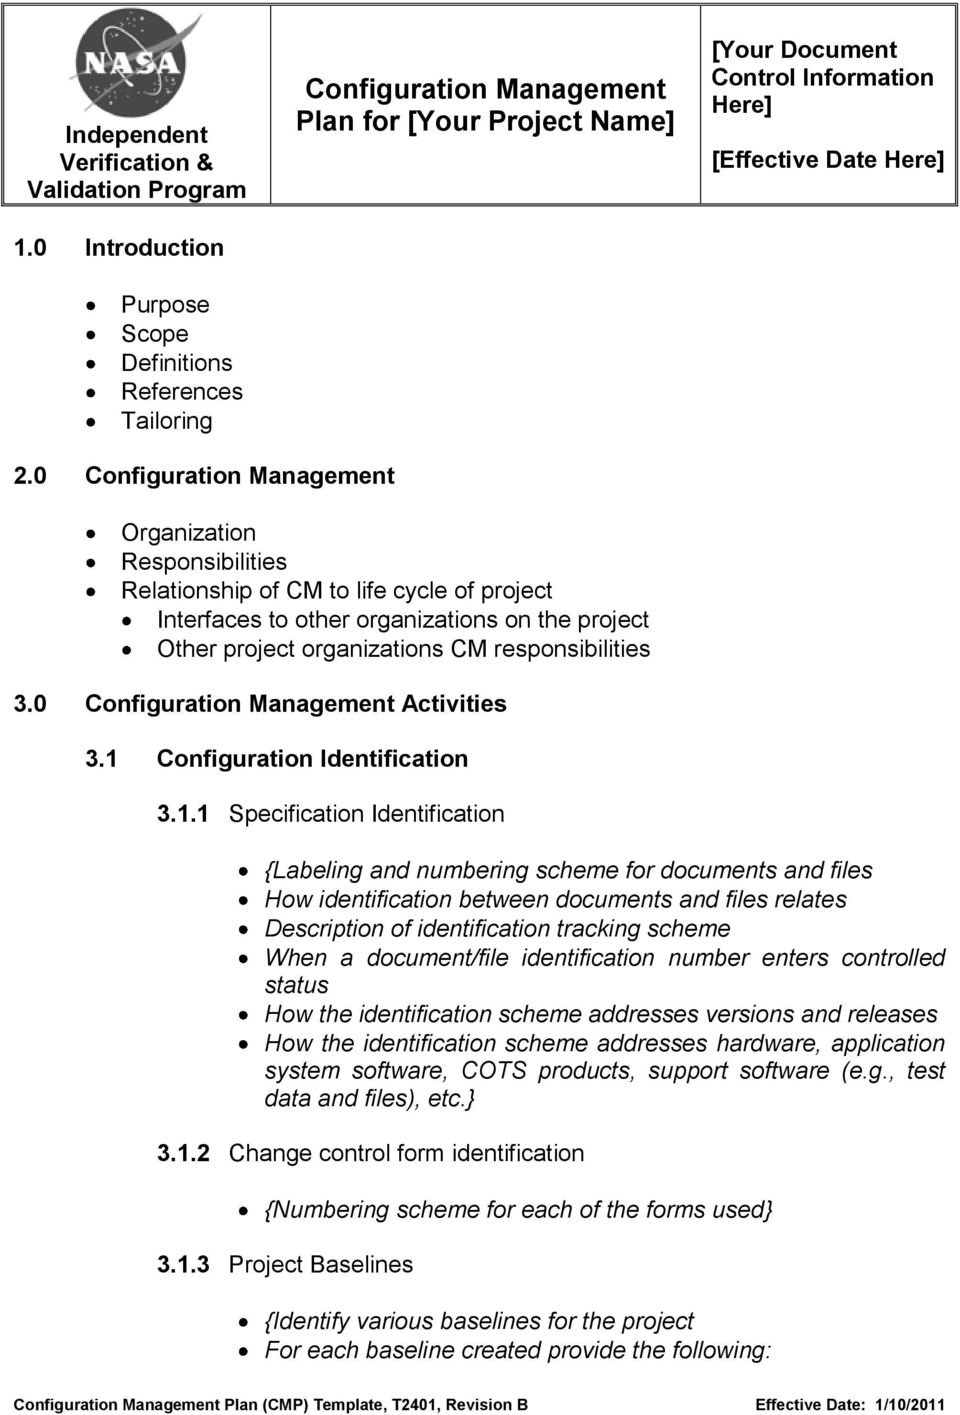 Configuration Management Plan (CMP) Template - PDF